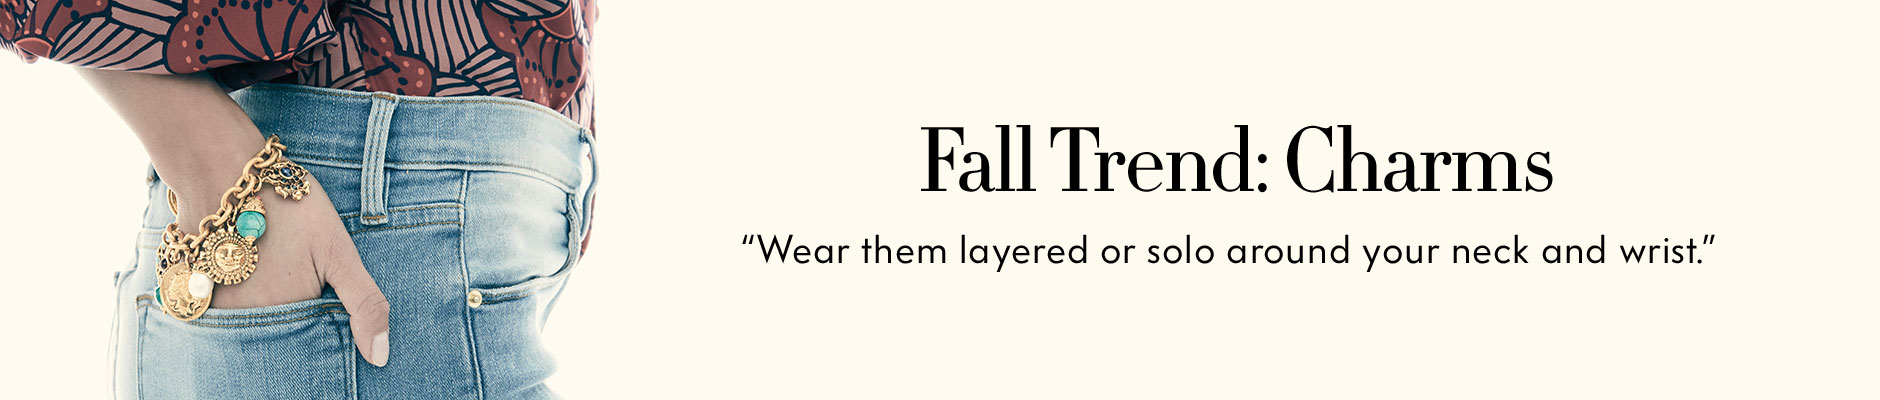 Fall Trend: Charms - Wear them layered or solo around your neck and wrist.